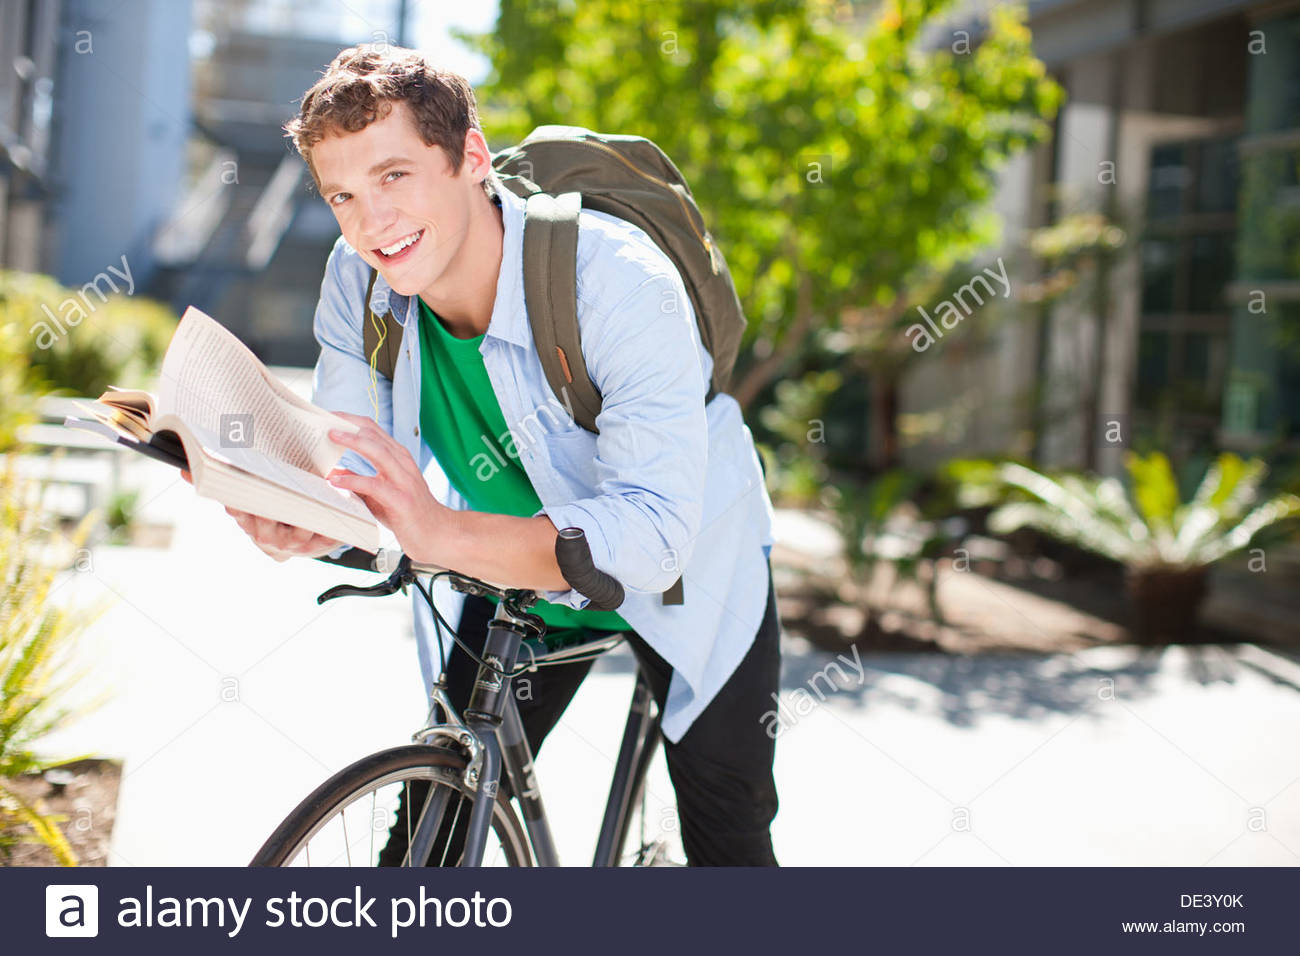 Student reading on bicycle - Stock Image